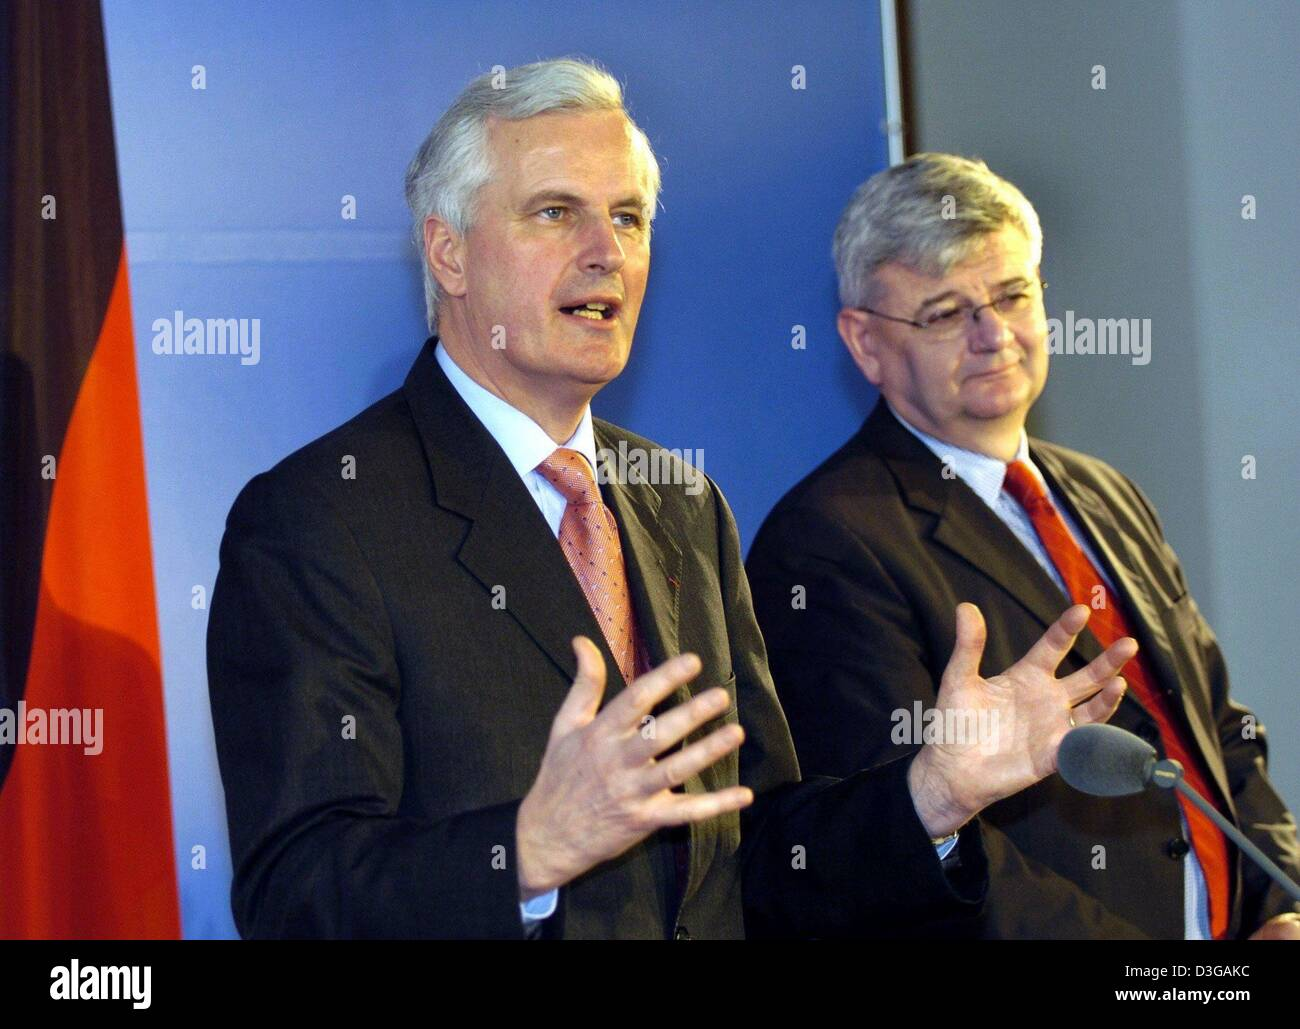 (dpa) - French Foreign Minister Michel Barnier (L) gestures as he speaks while standing next to German Foreign Minister - Stock Image